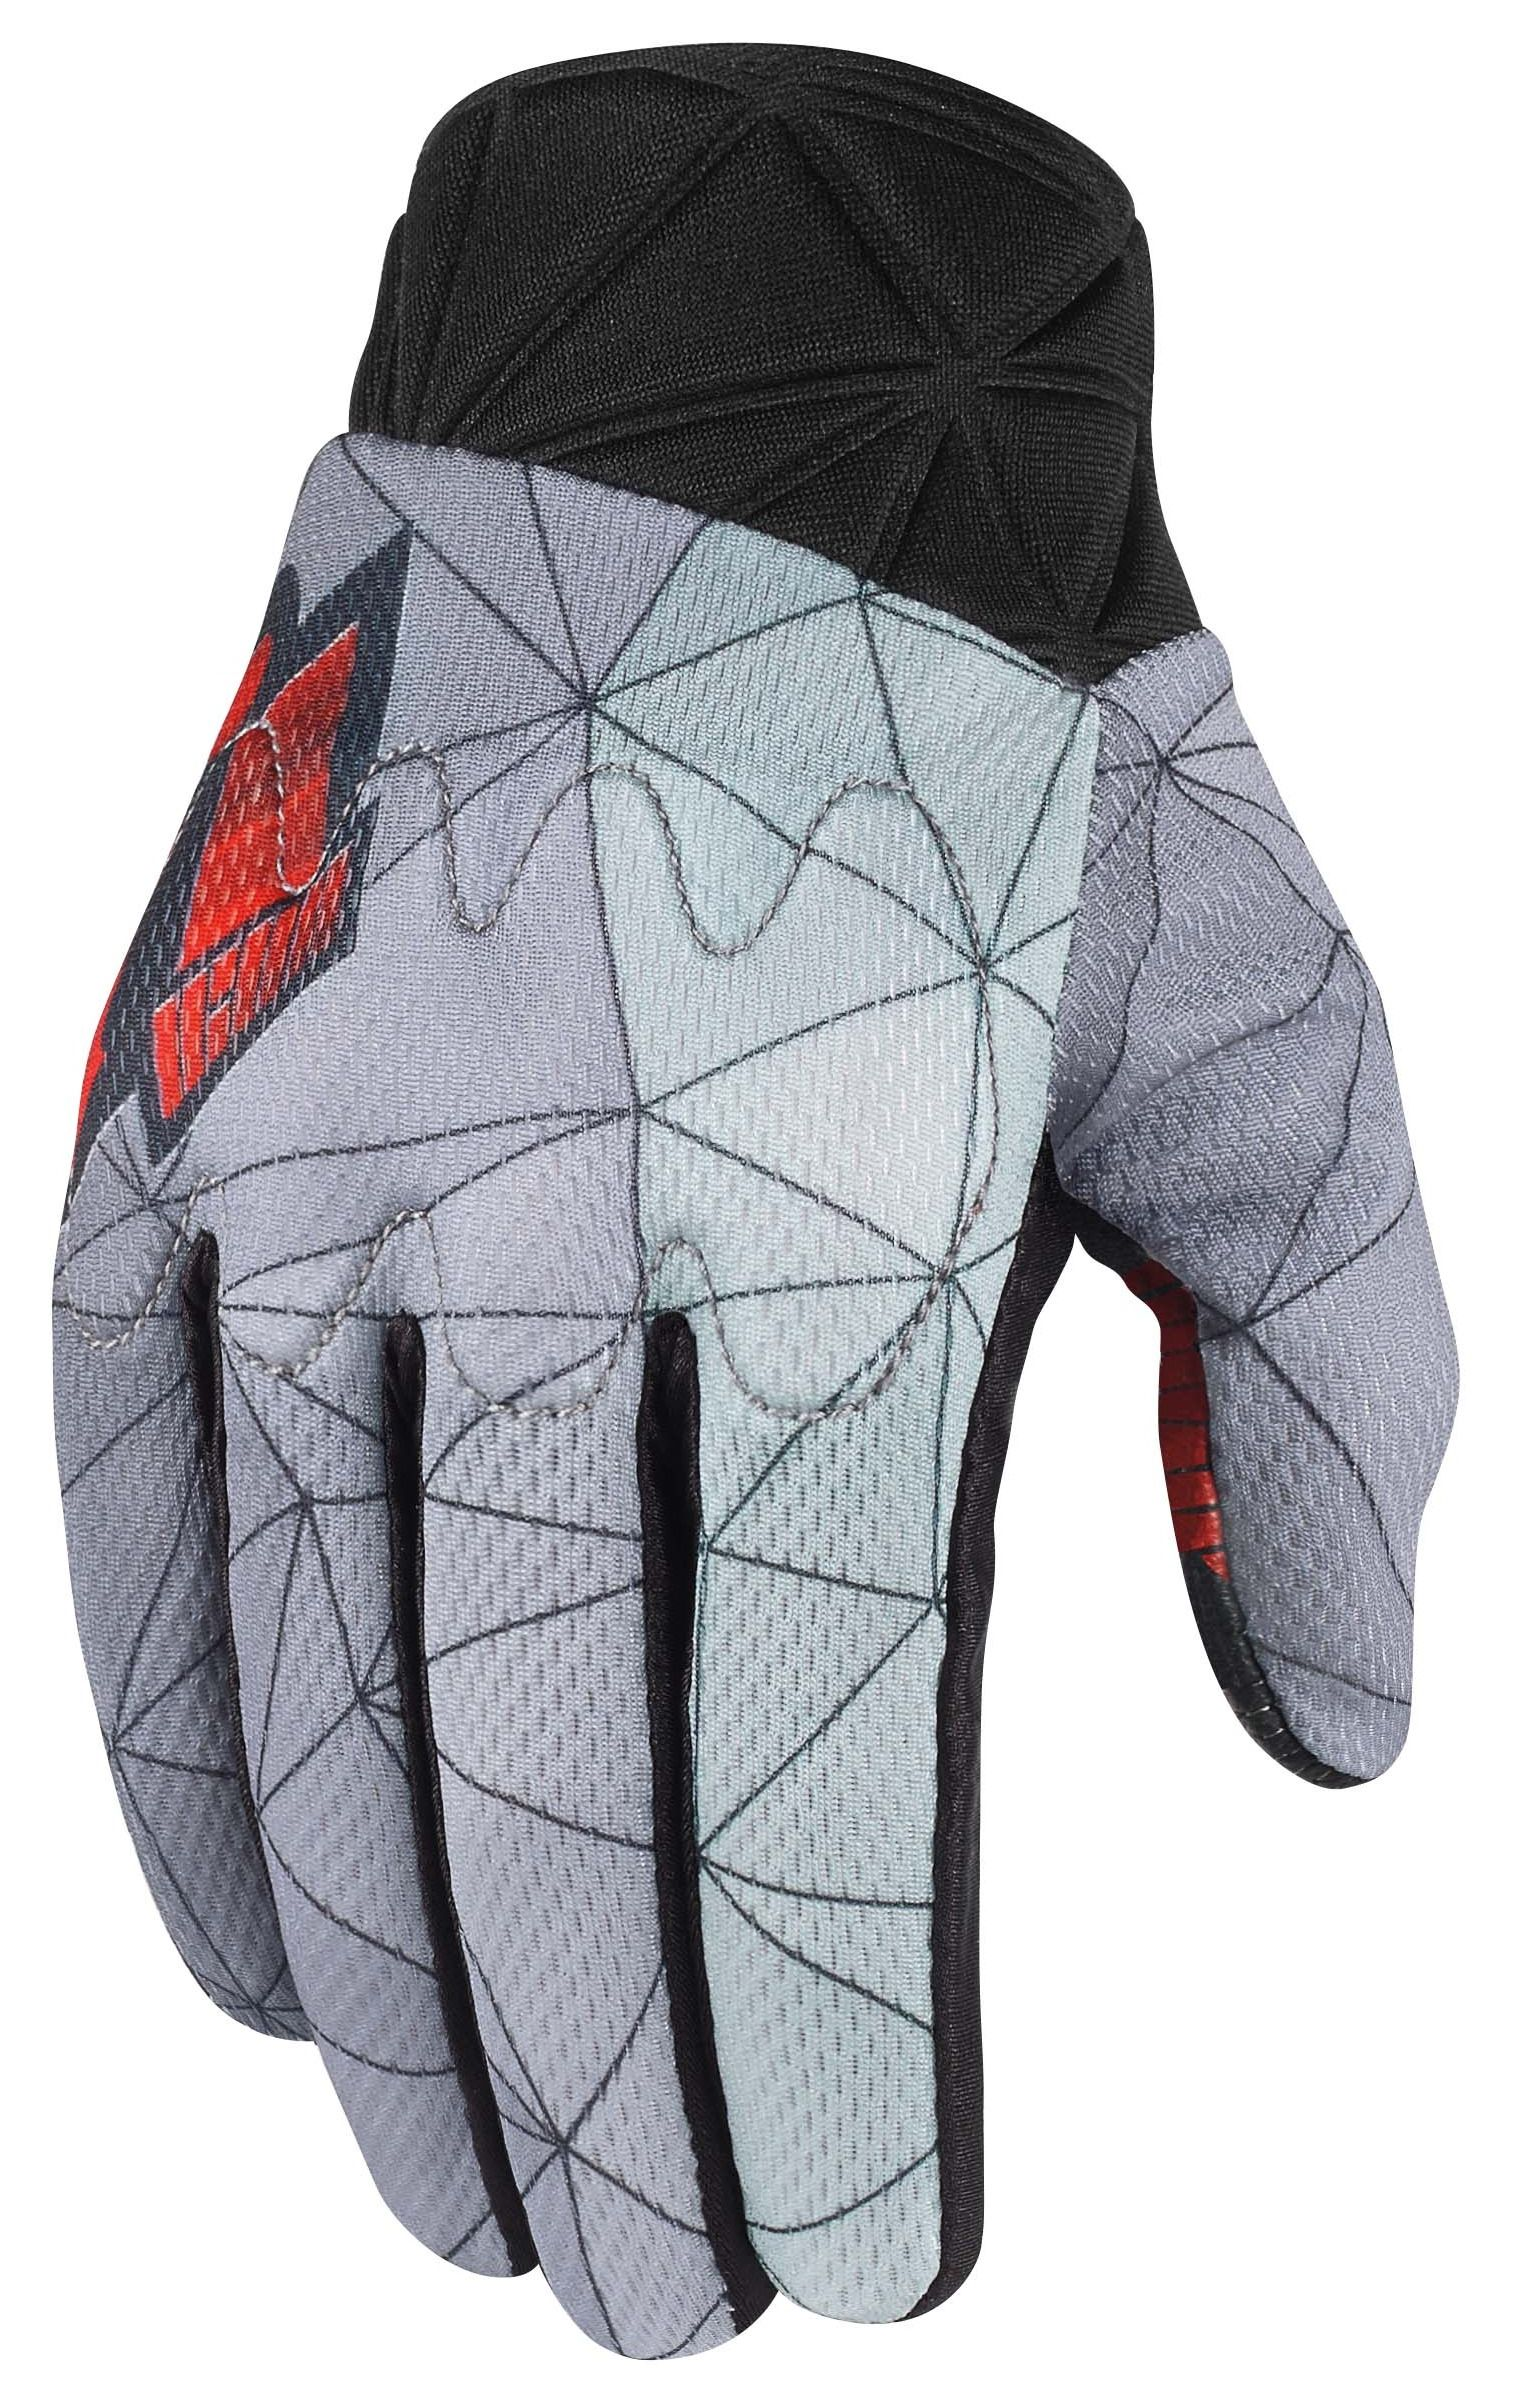 Motorcycle gloves d30 - Motorcycle Gloves D30 30